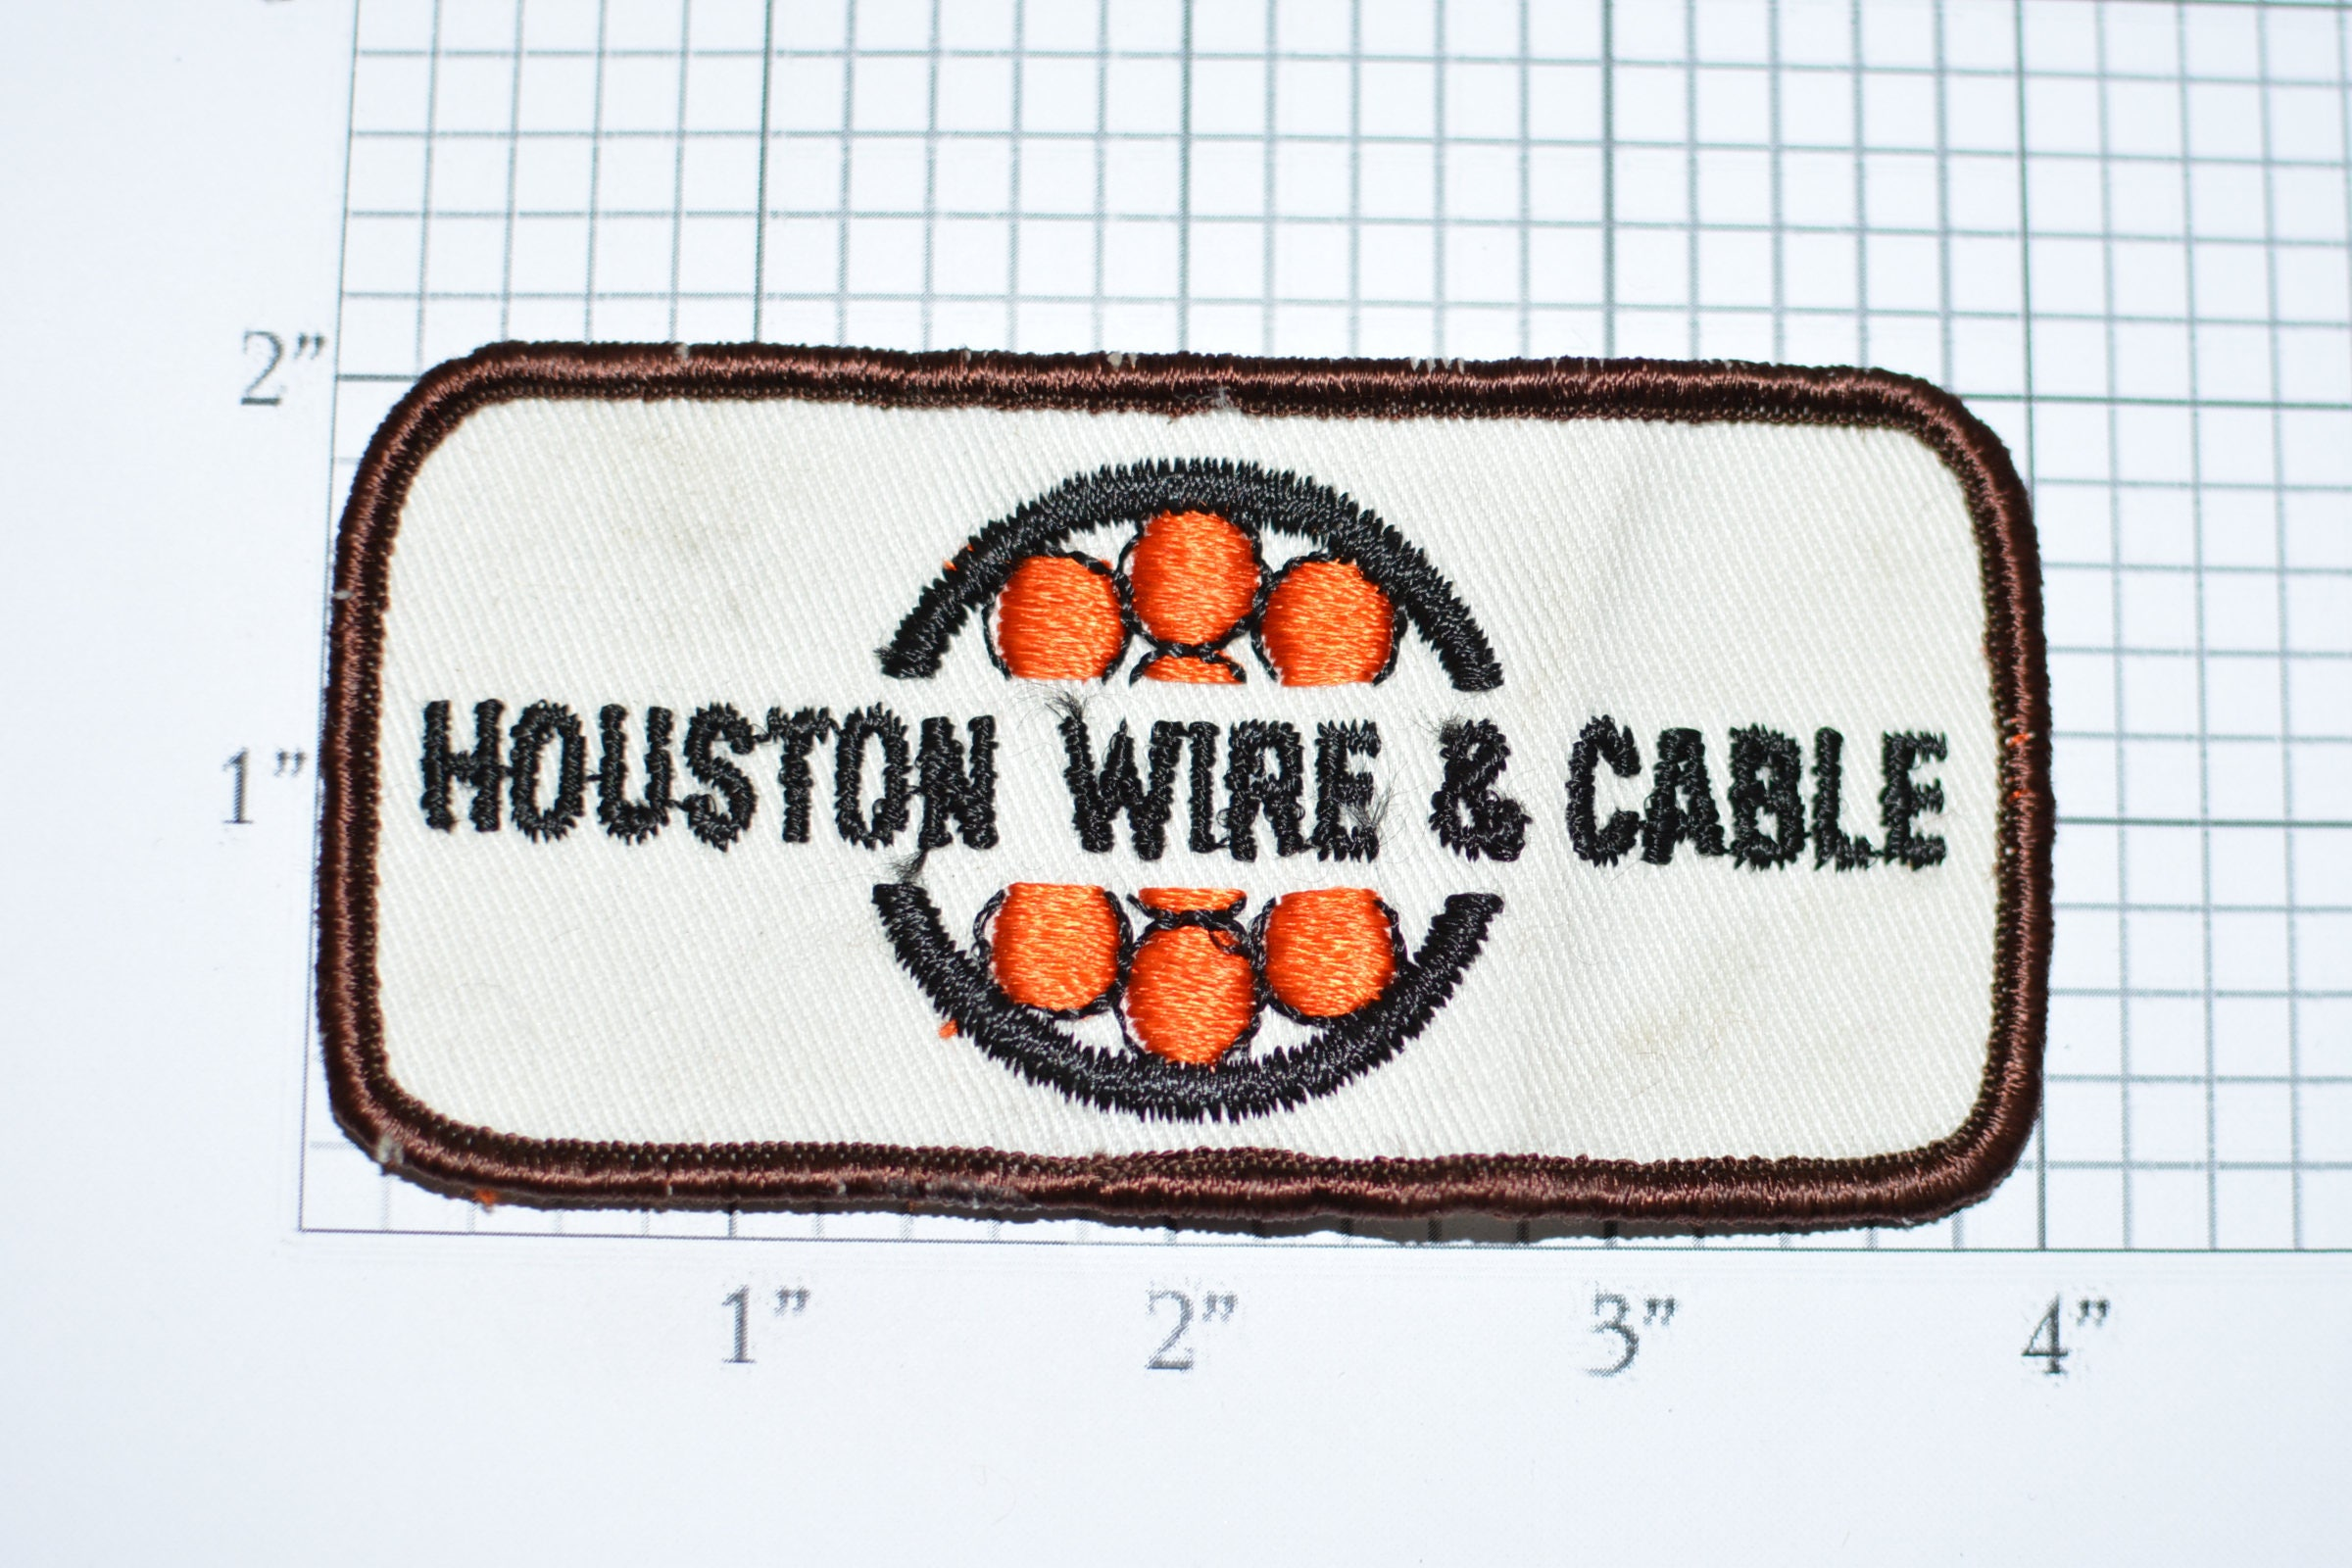 Houston Wire & Cable Vintage Embroidered Sew-on Clothing Patch